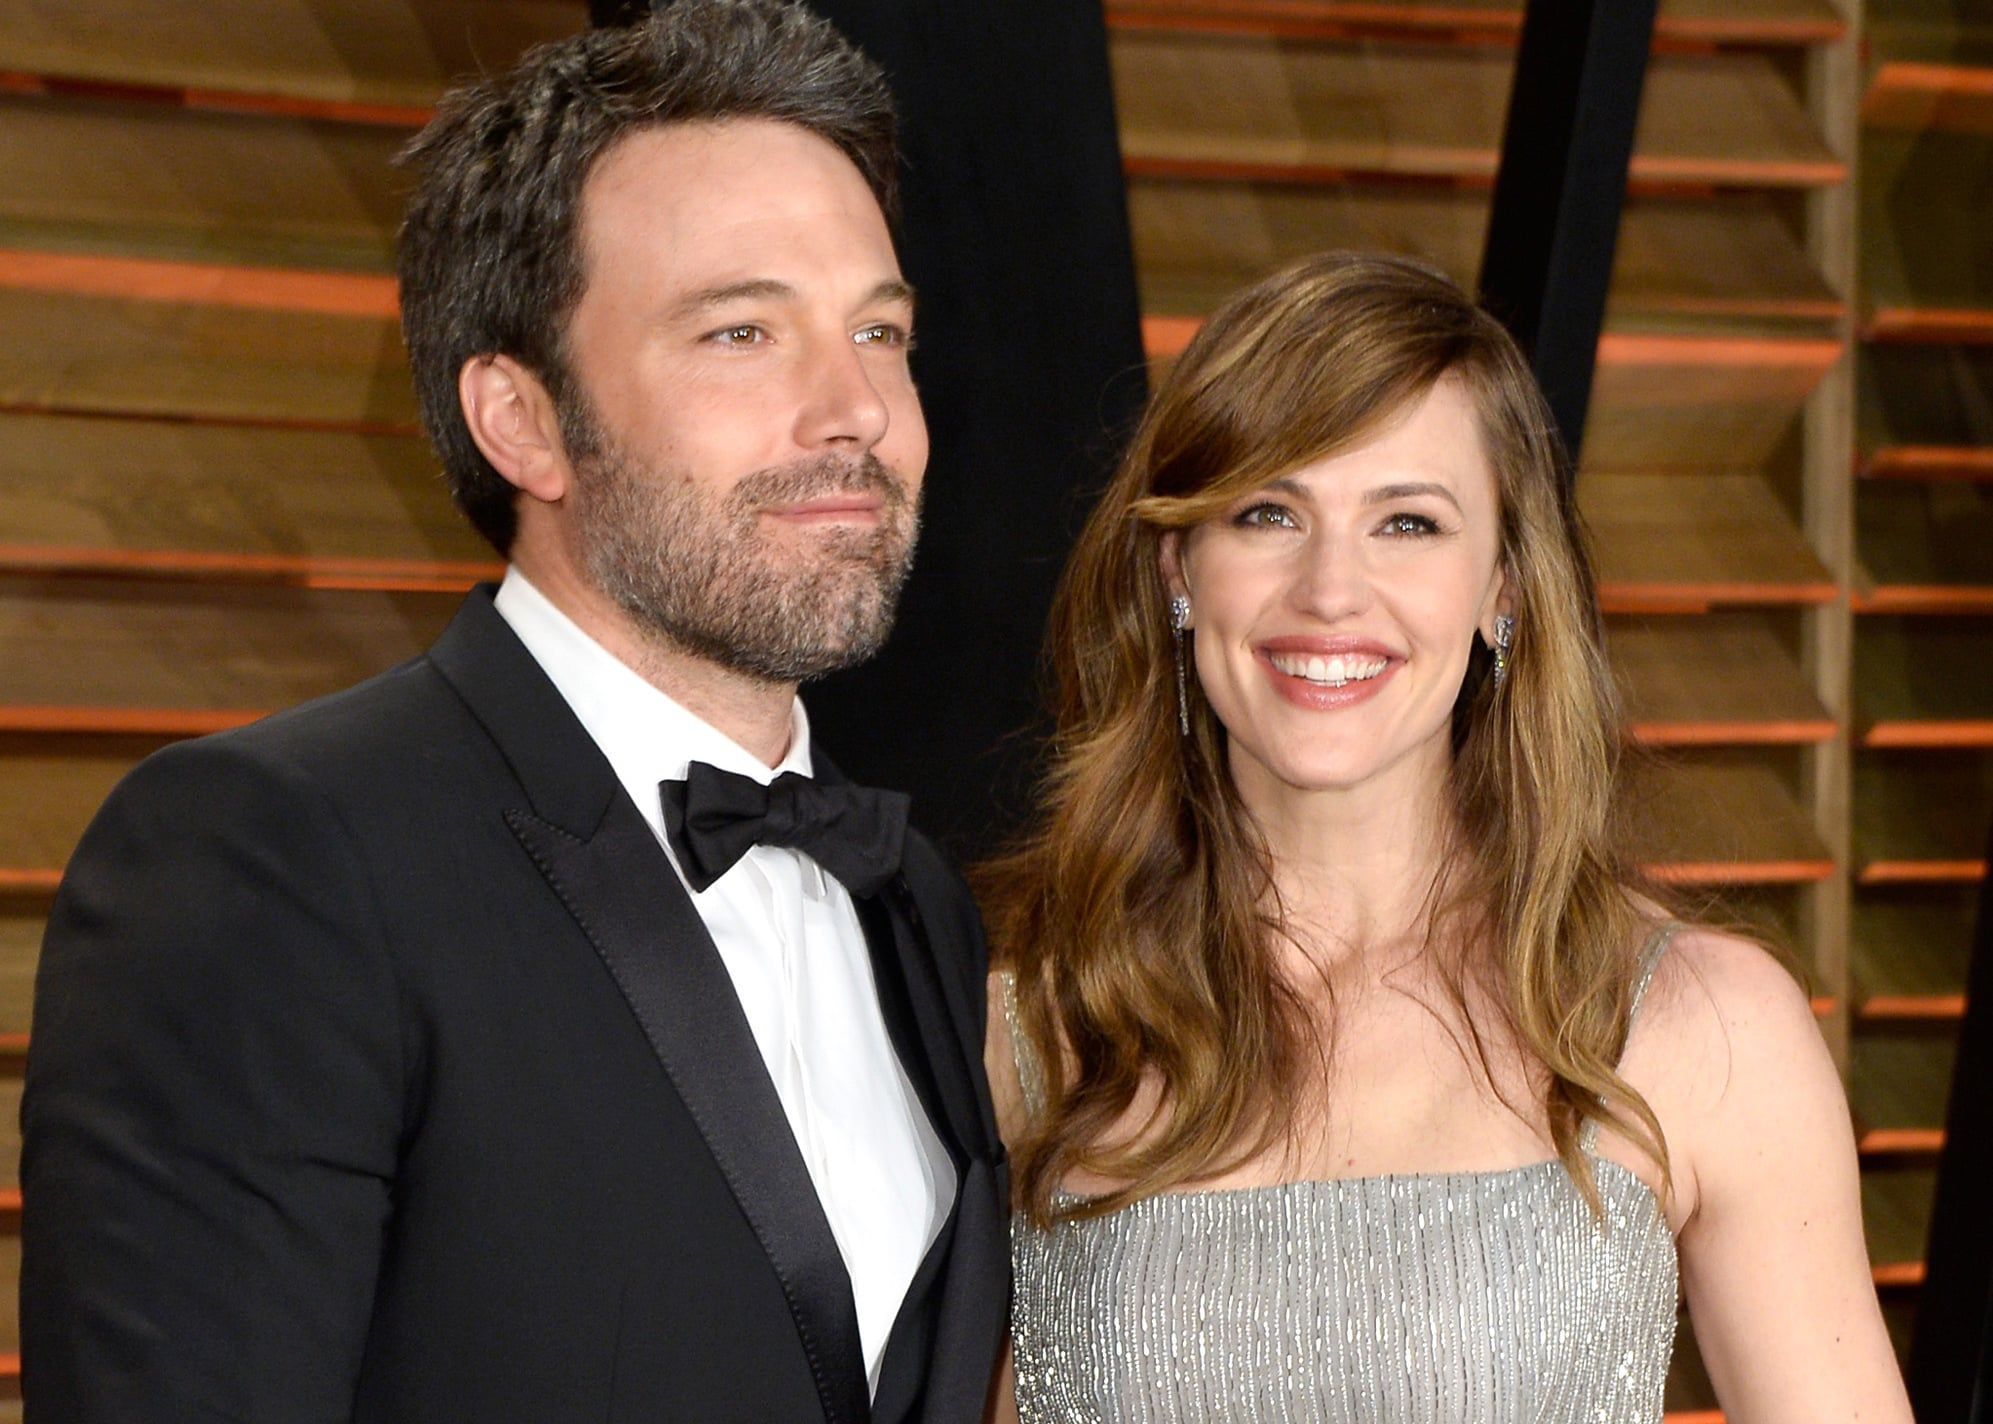 Discussion on this topic: Ben Affleck Thanks Jennifer Garner for Her , ben-affleck-thanks-jennifer-garner-for-her/